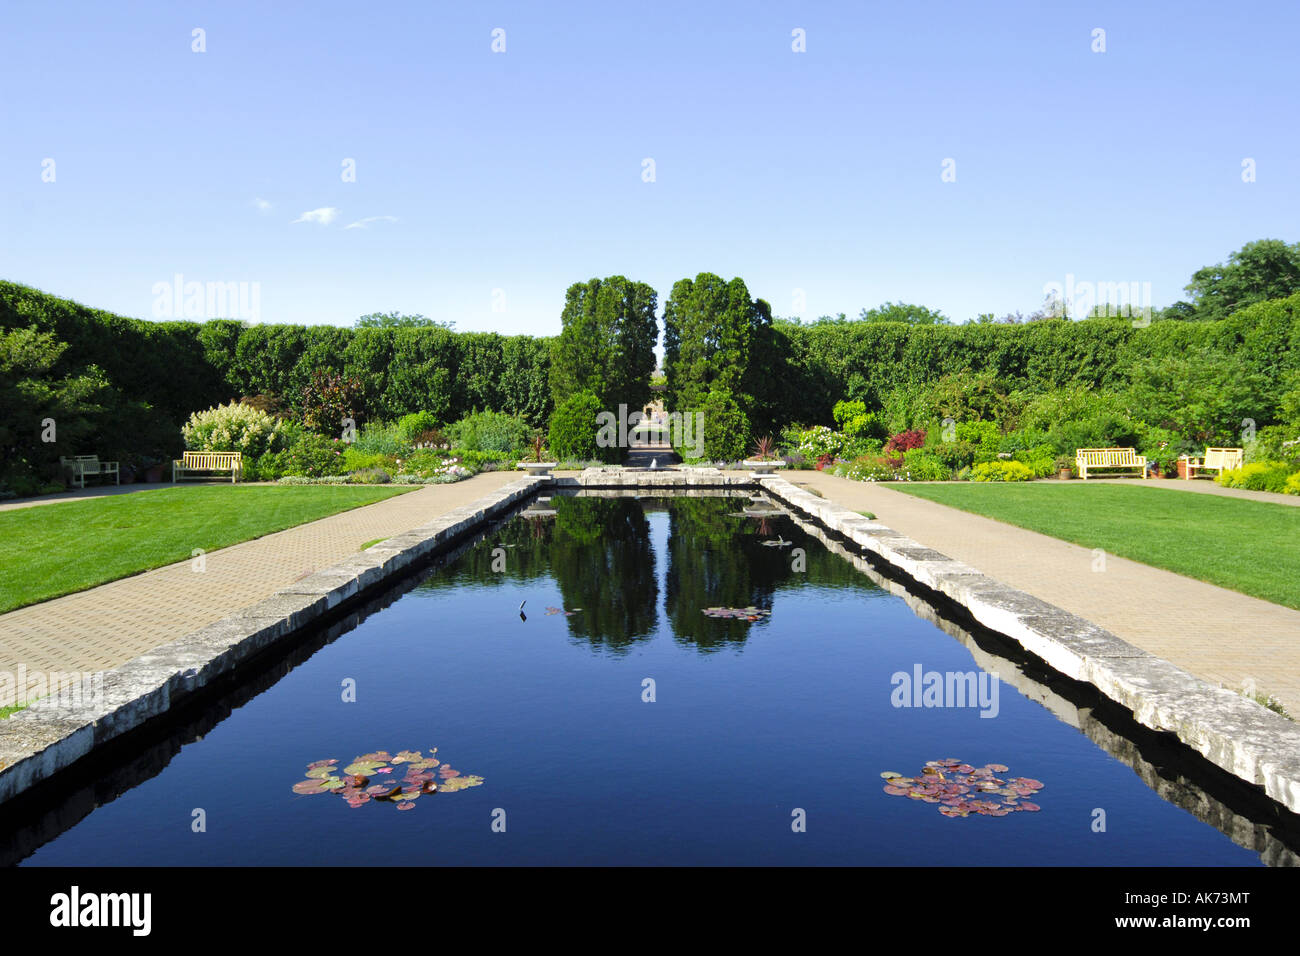 Indian Summer Afternoon At Olbrich >> Water Feature In Botanical Gardens Stock Photos Water Feature In